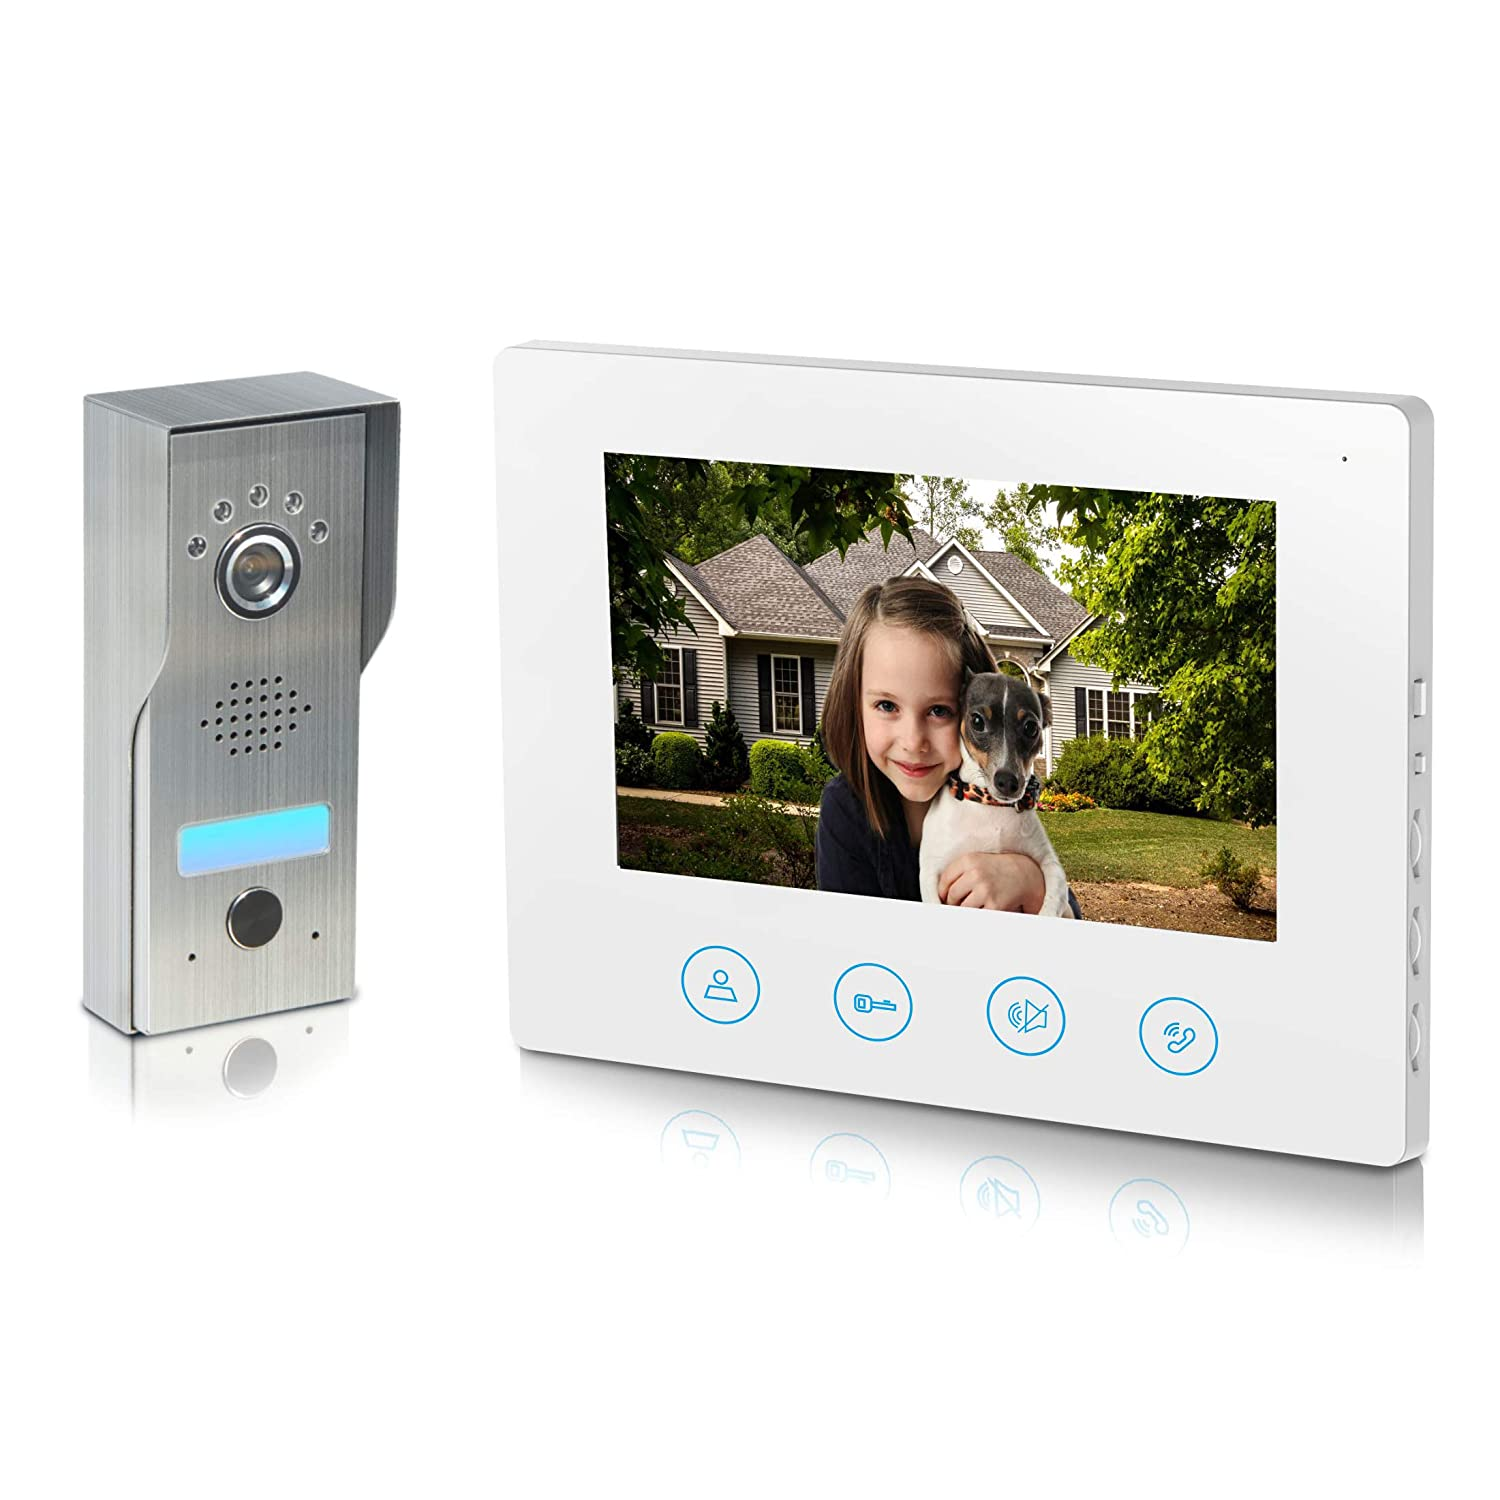 Video Doorbell 7inch Monitor 4-Core wired IP44 water-proof Video Door Phone Intercom Kit 1-camera 1-monitor Night Vision Touch Button Color Screen – No Wi-Fi APP 4wire White